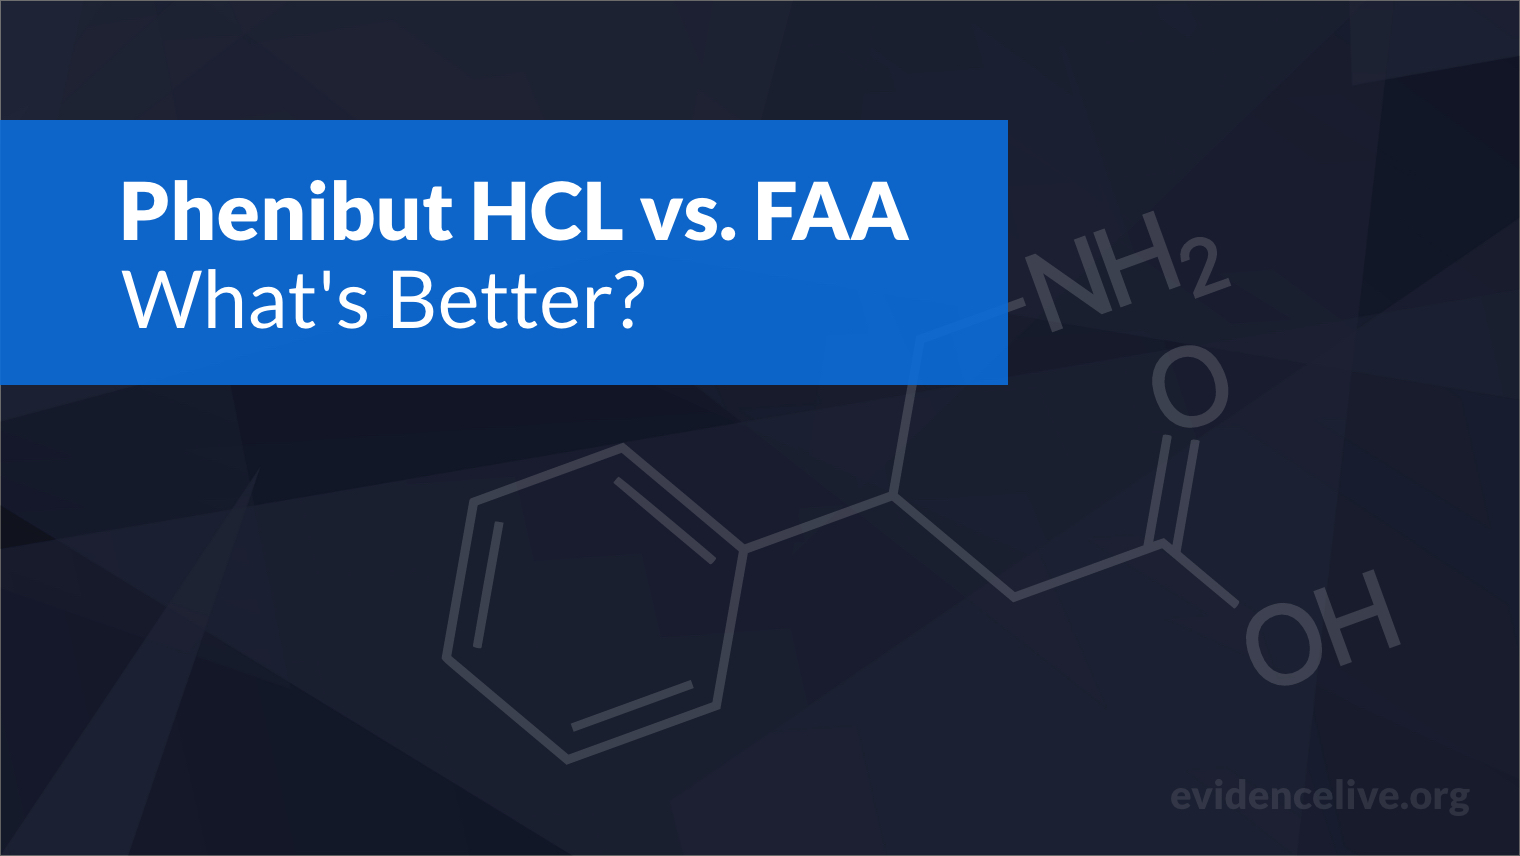 Phenibut HCL vs. FAA: Differences and What's Better